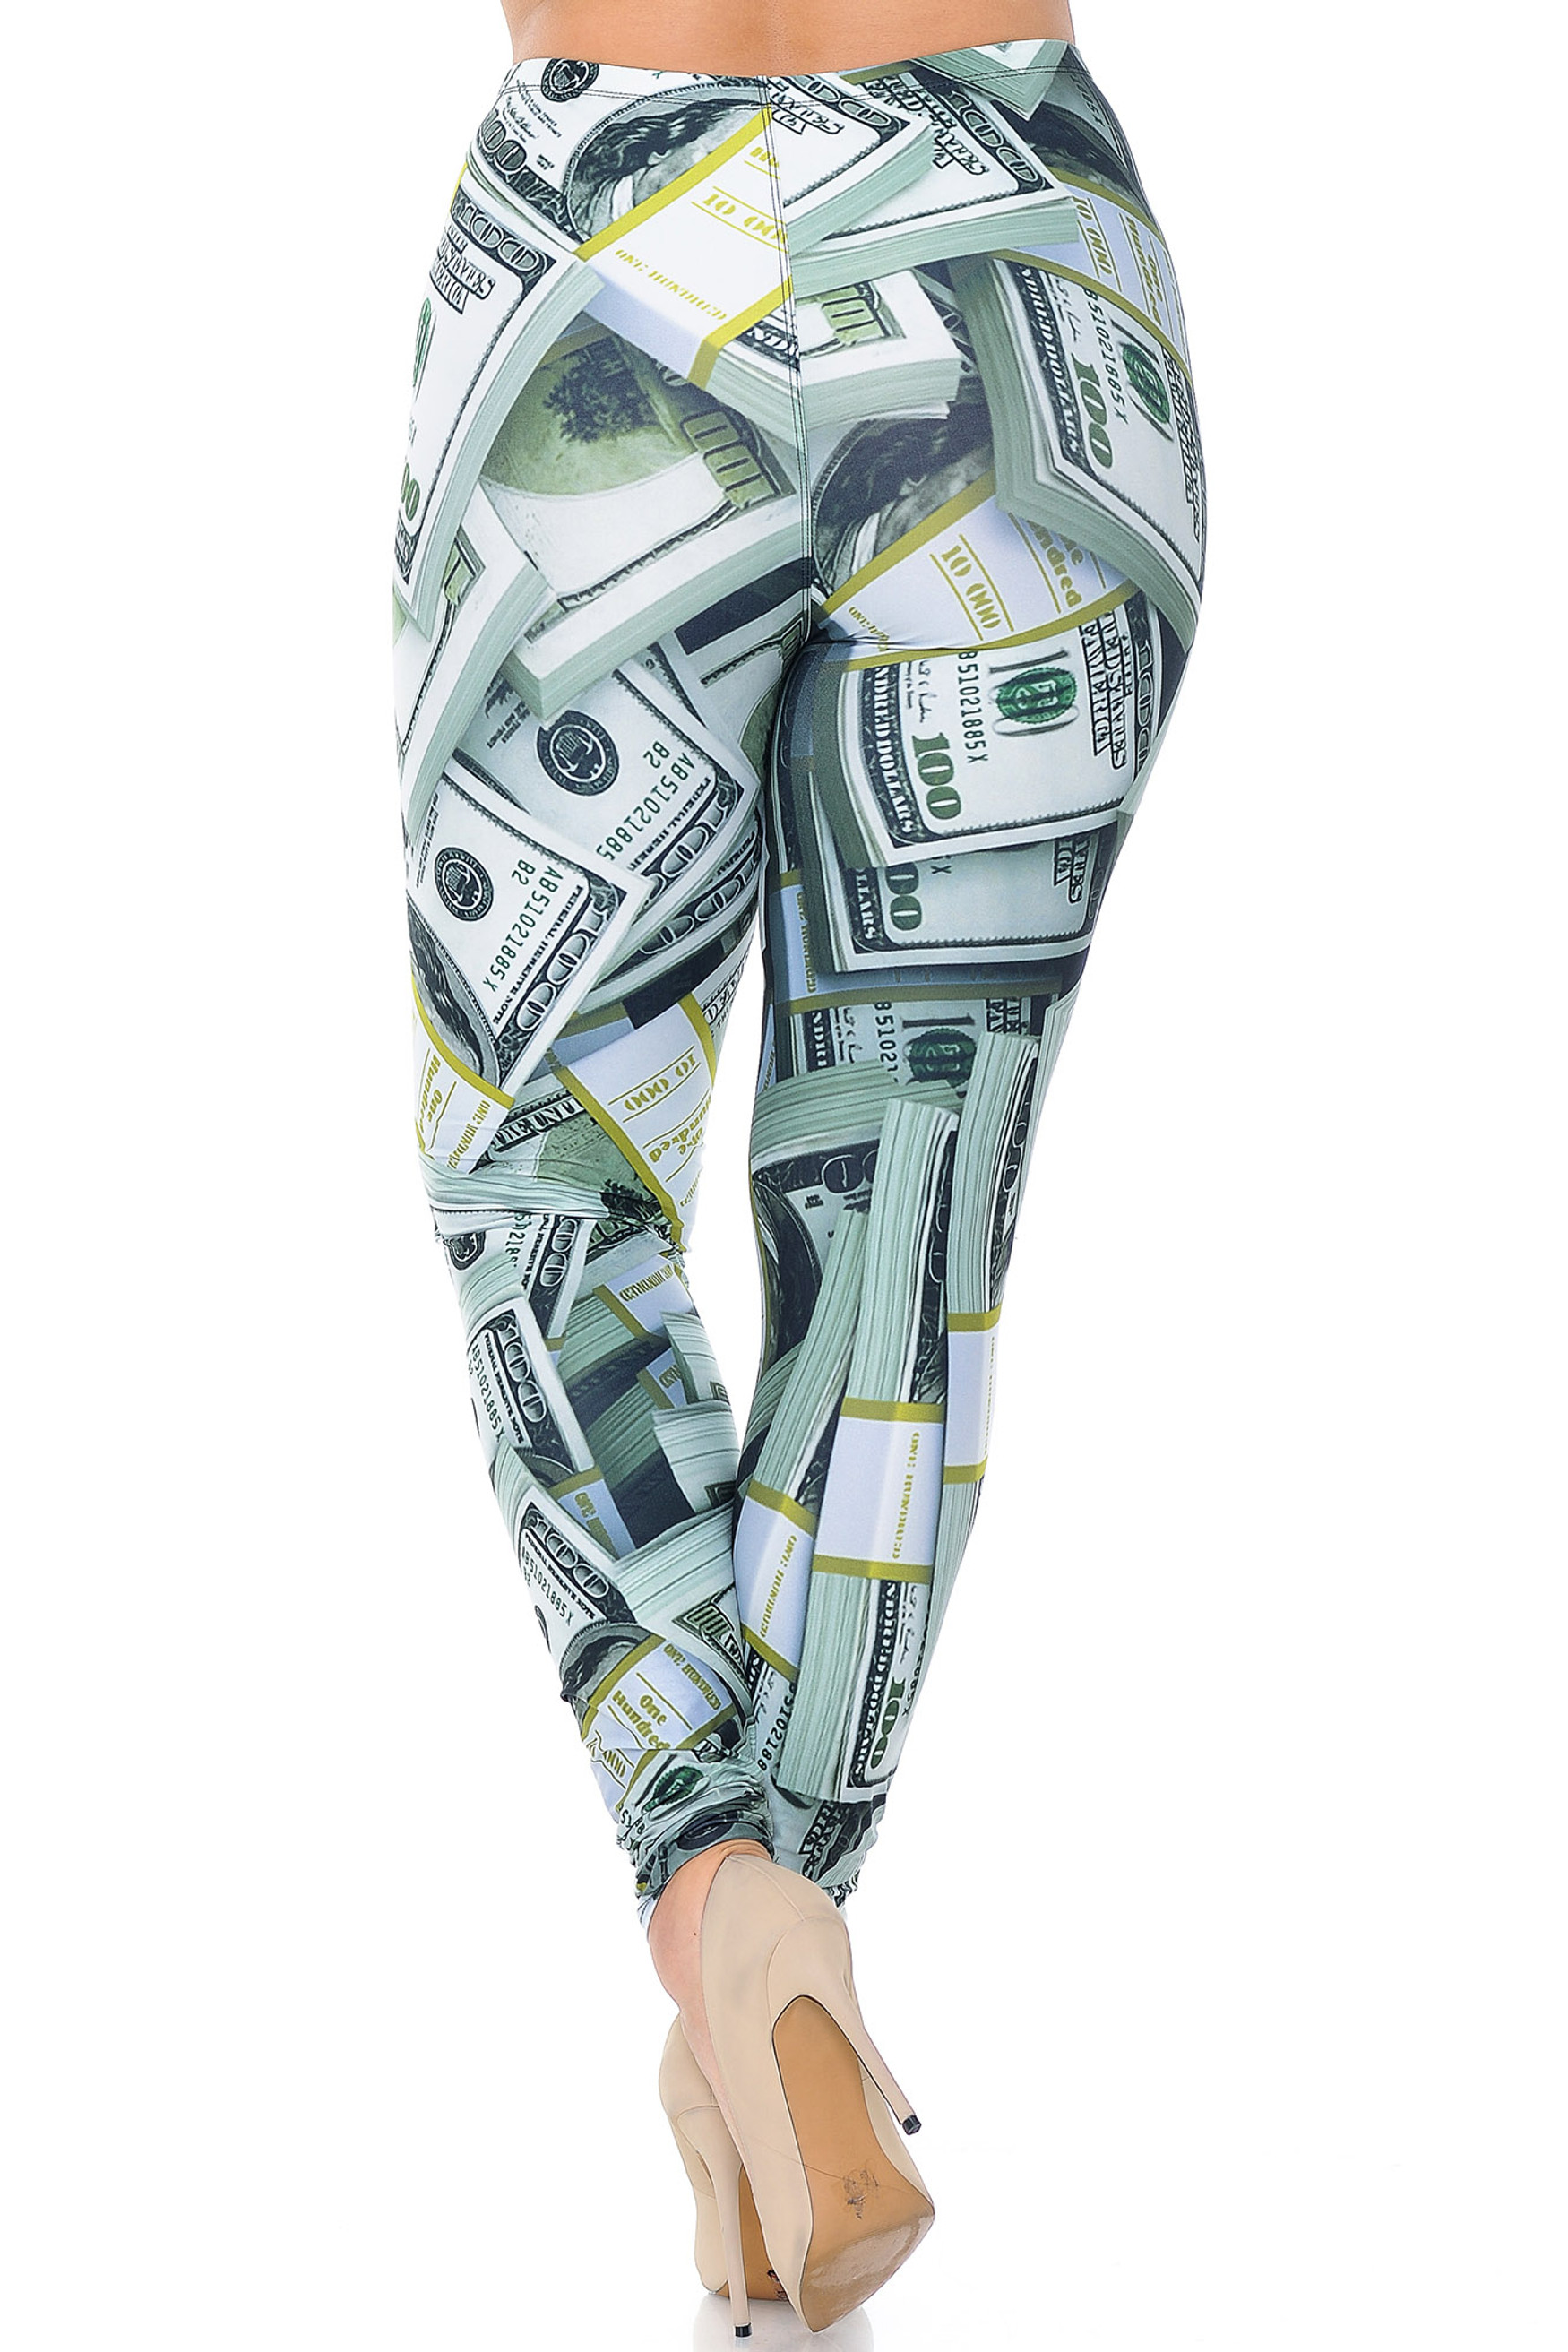 Creamy Soft Cash Money Plus Size Leggings - USA Fashion™